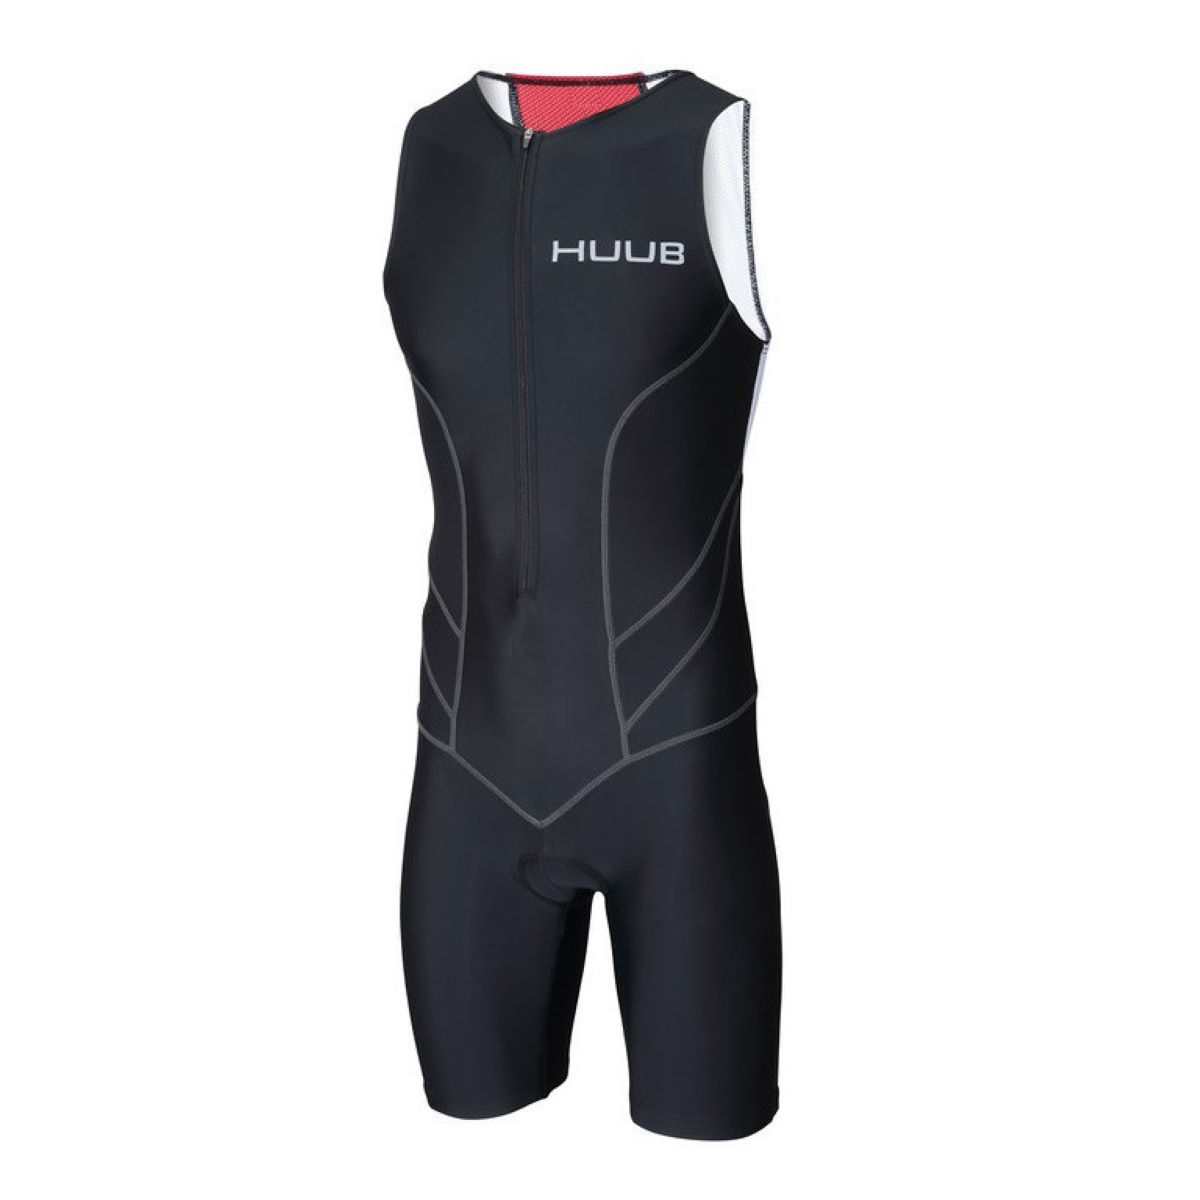 HUUB Men's Essential Tri Suit - Medium Black | Tri Suits